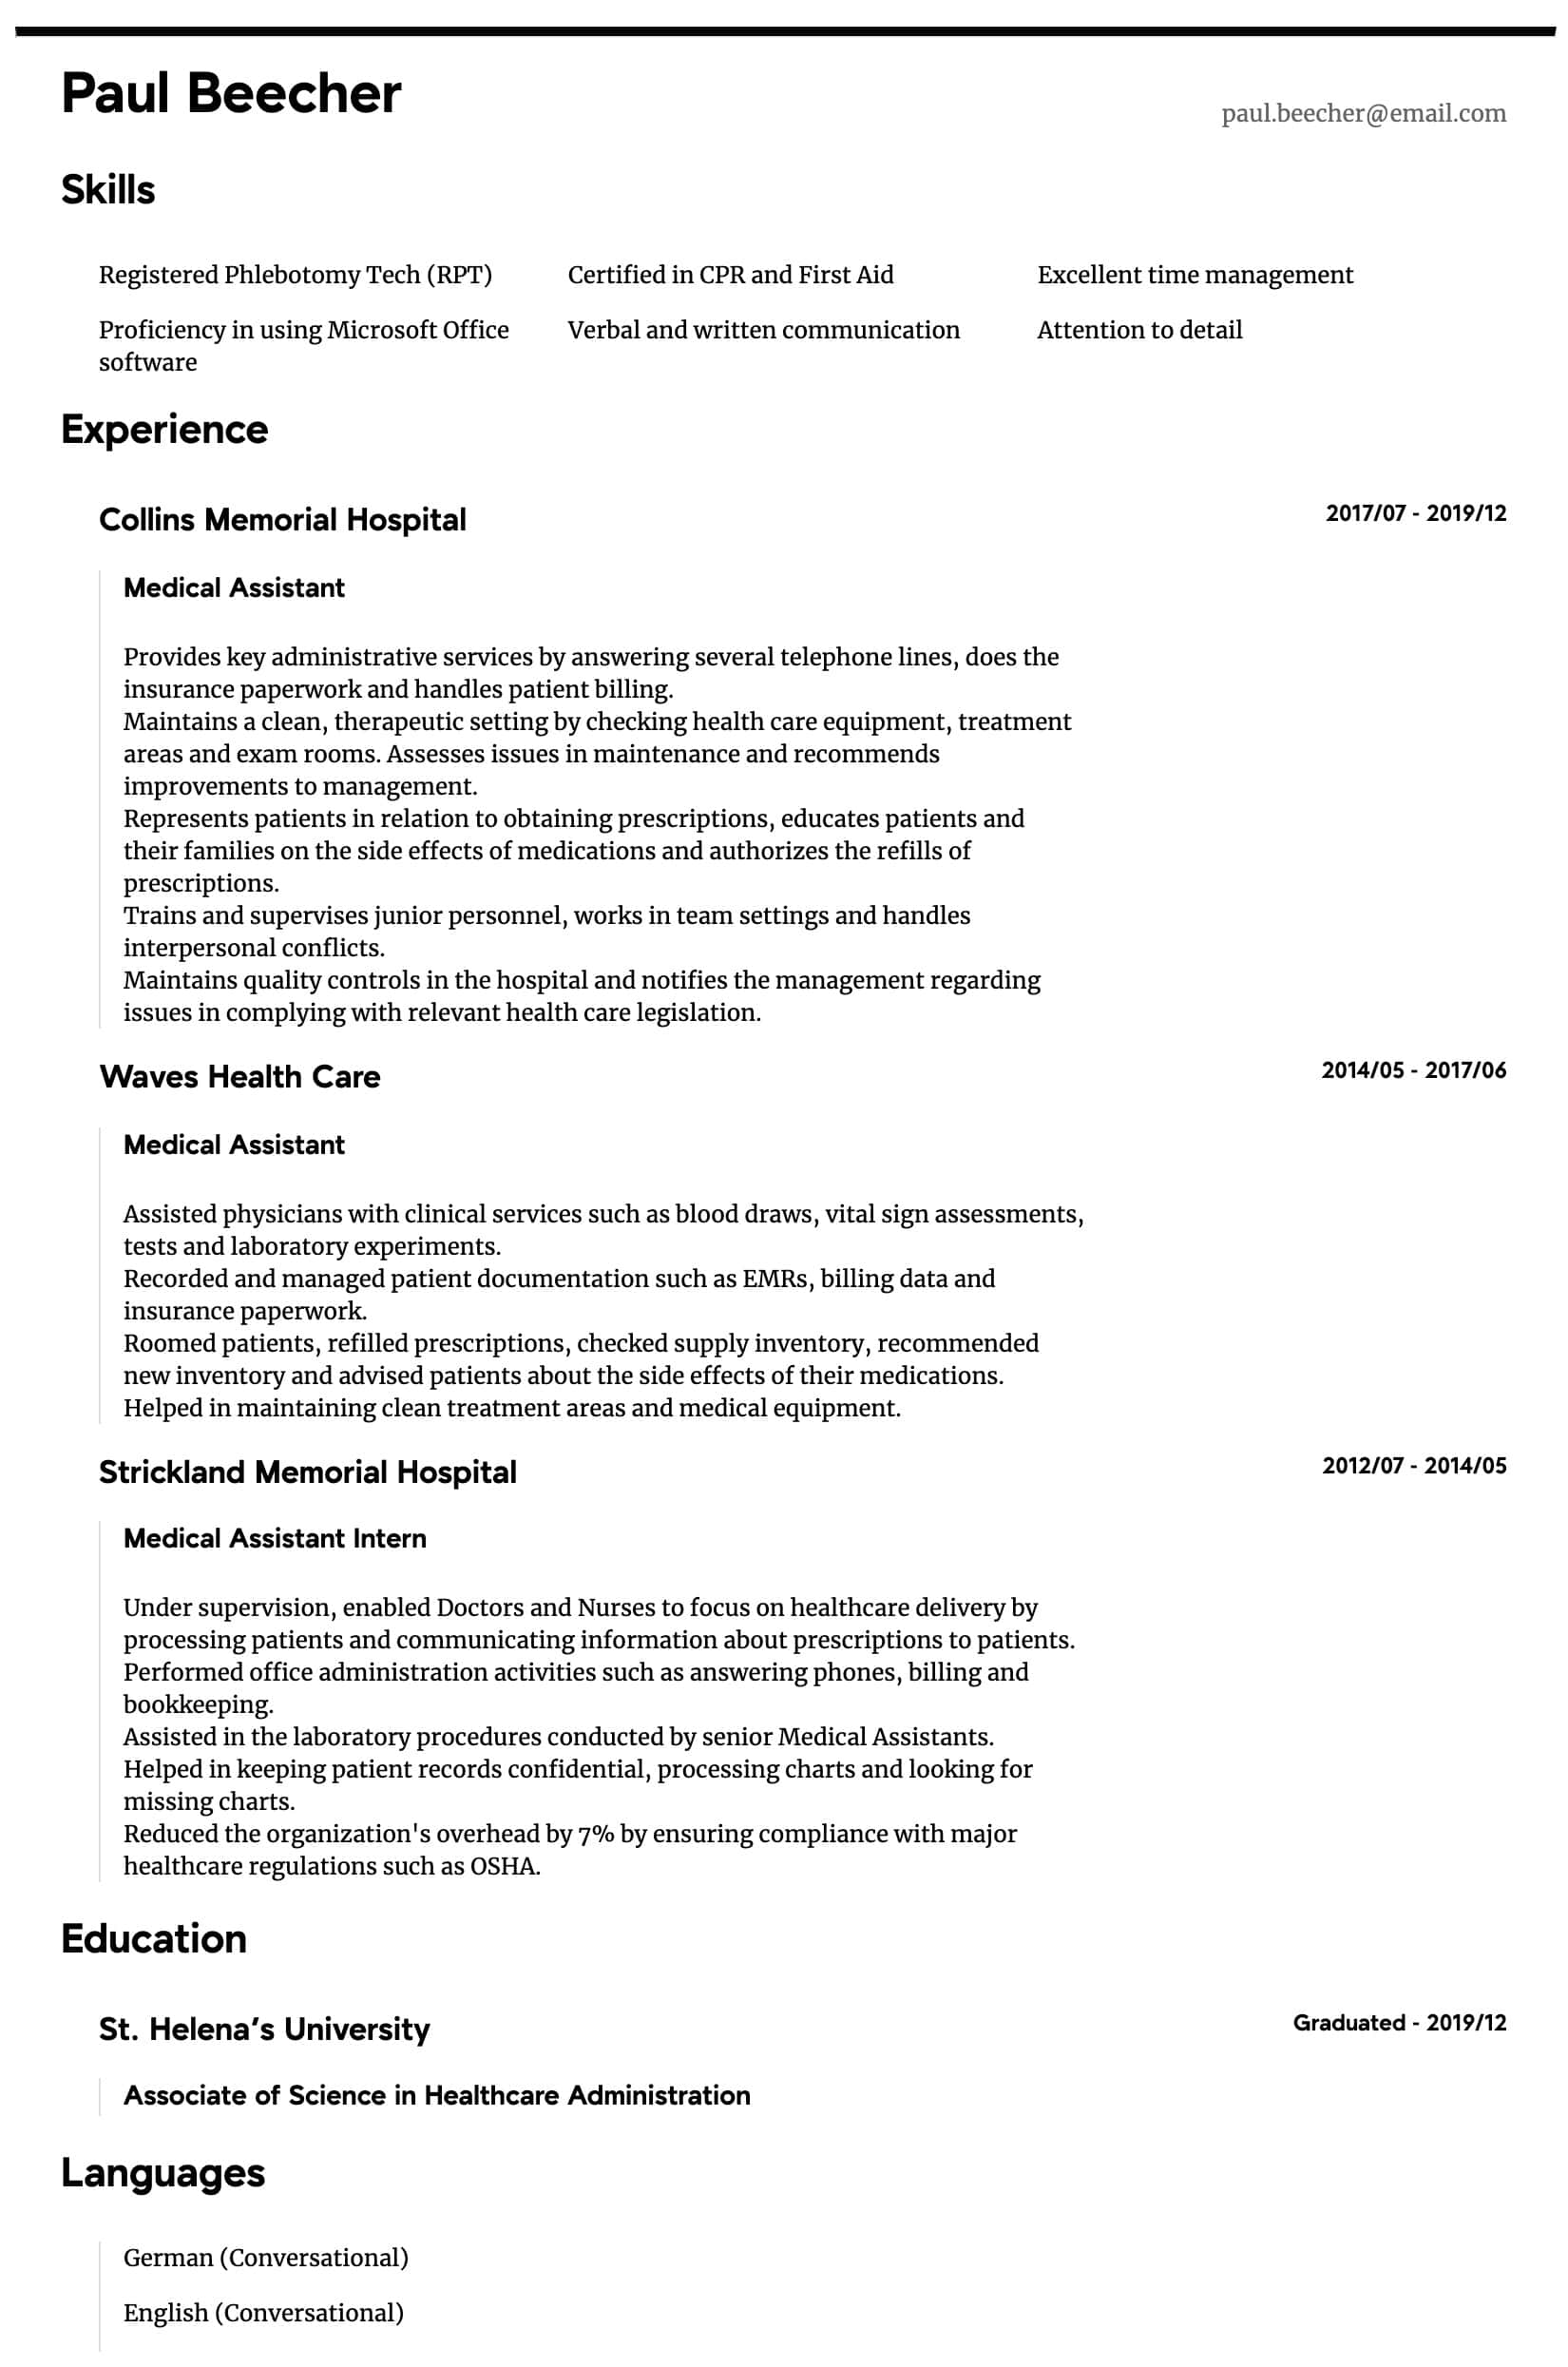 medical assistant resume samples all experience levels template intermediate experienced Resume Medical Assistant Resume Template